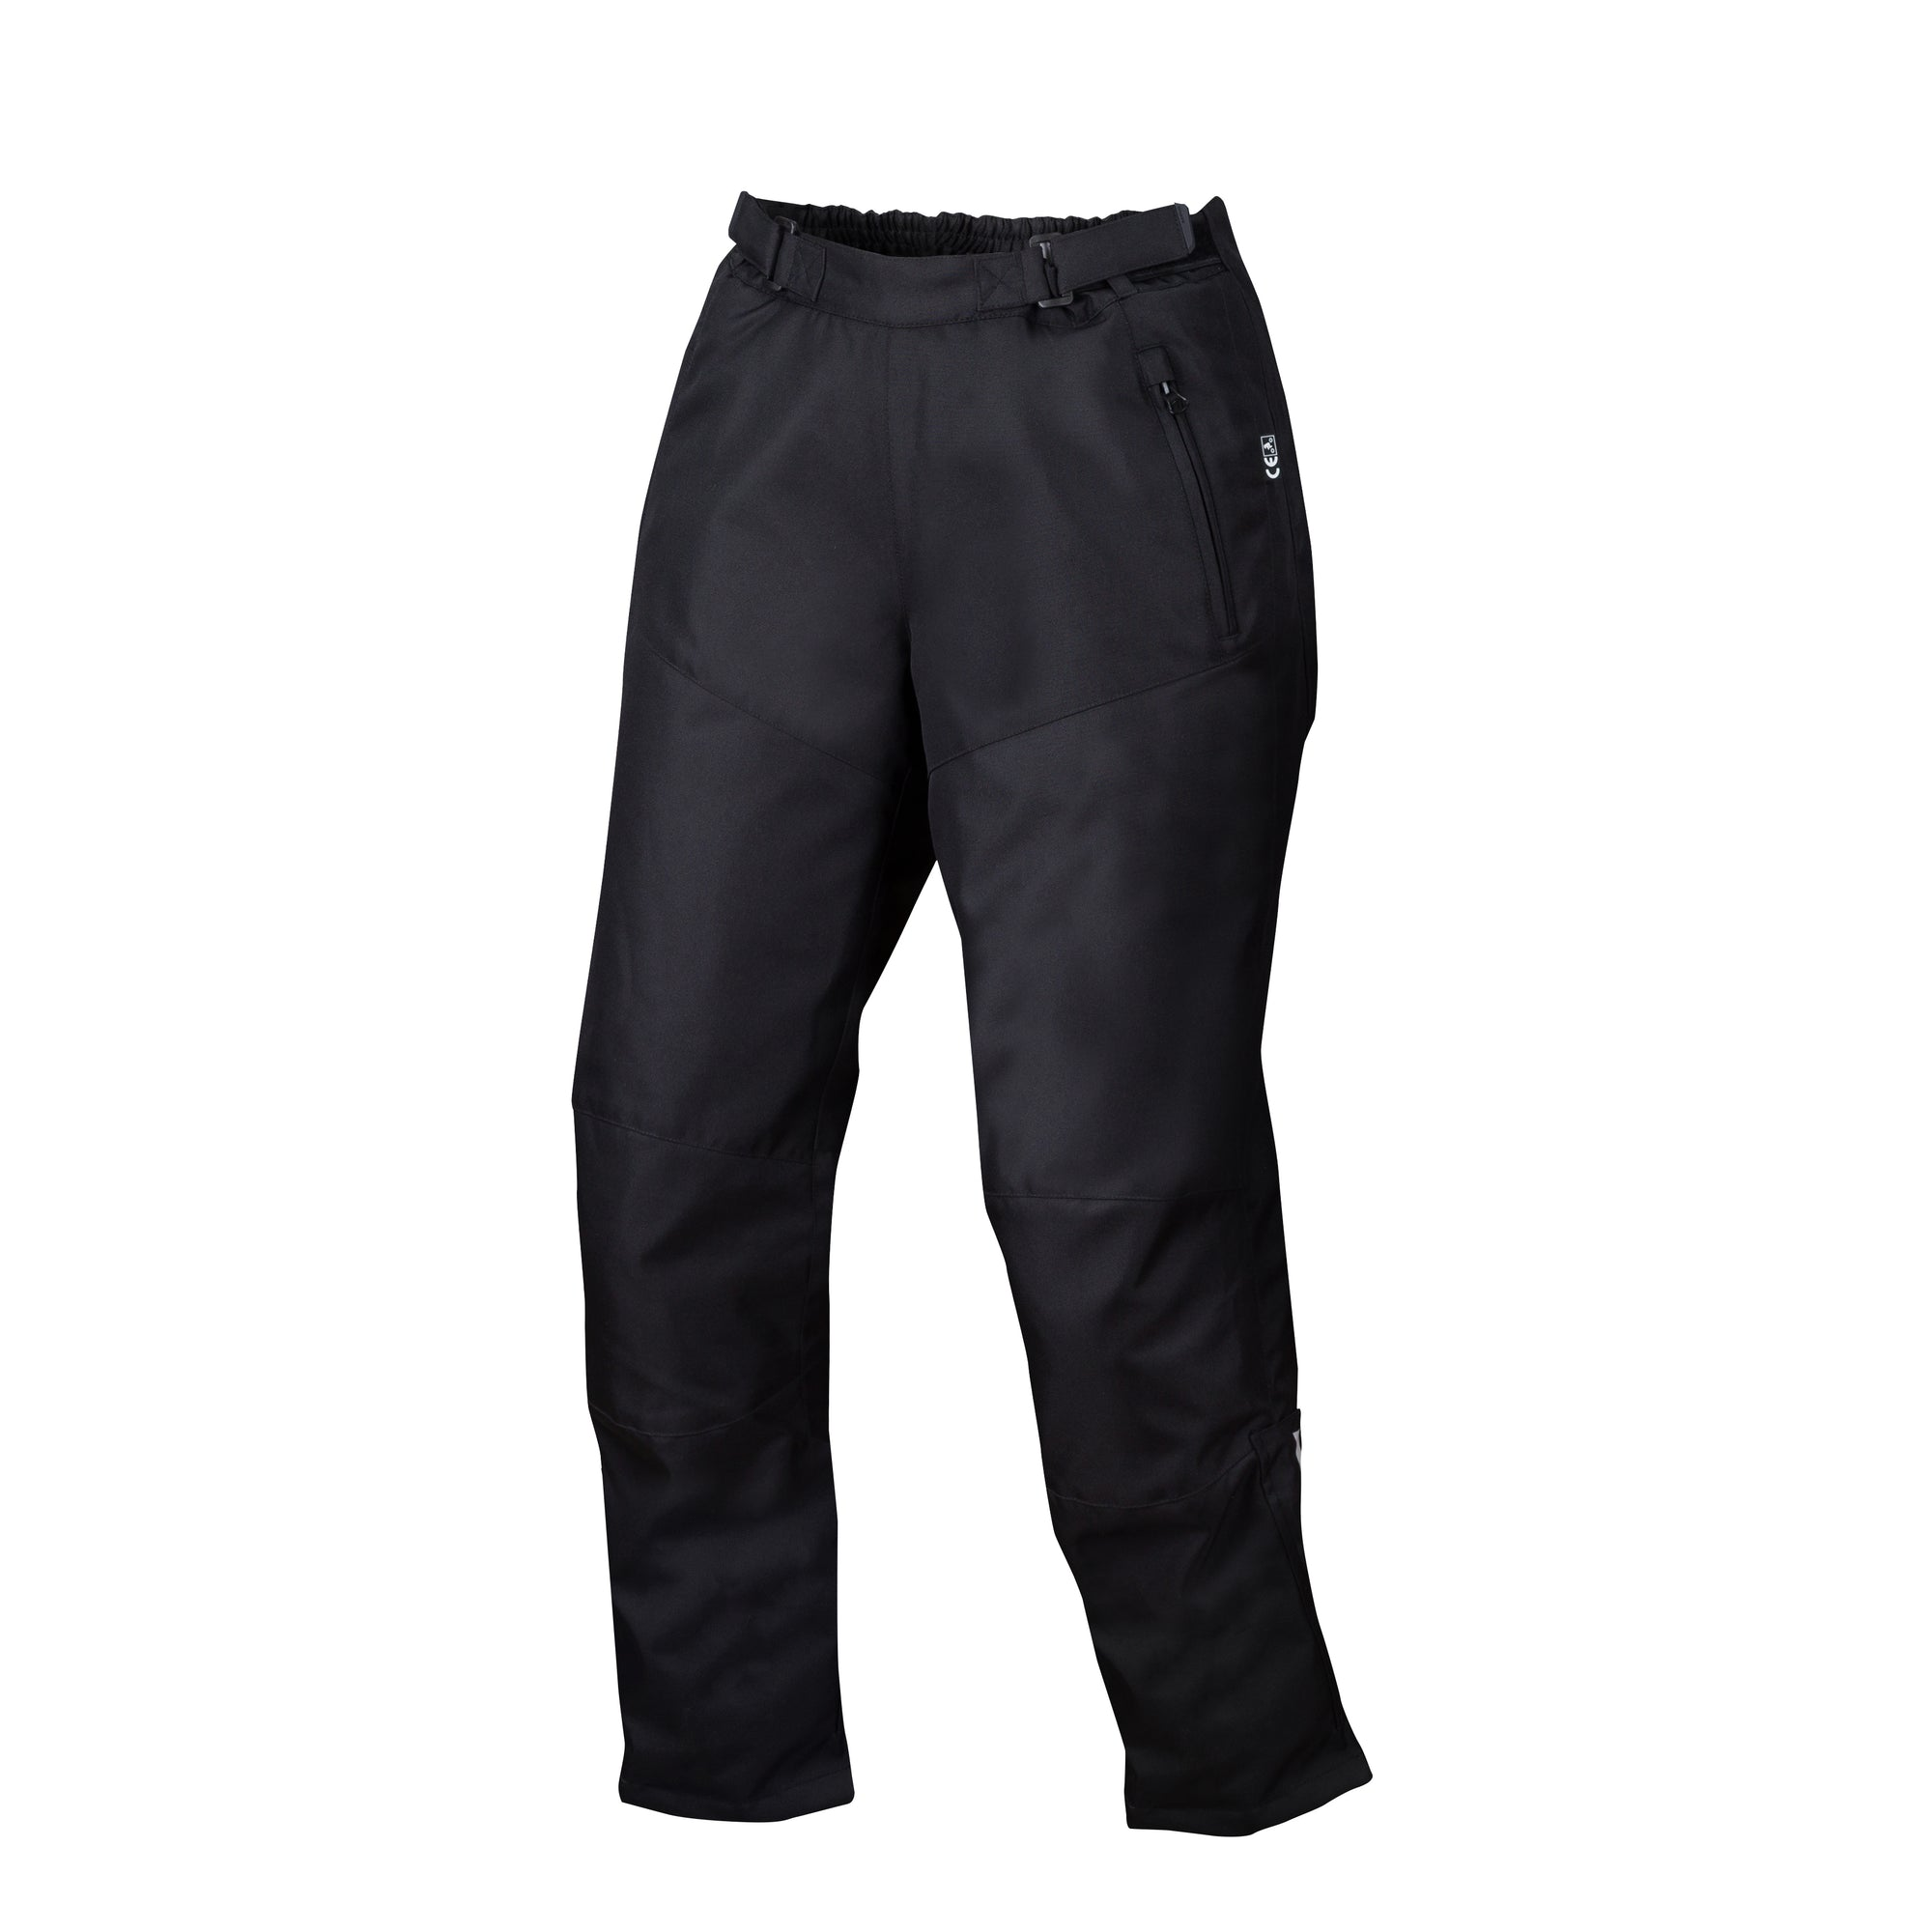 Bering Bartone Ladies Trousers, Ladies Trousers, Bering - Averys Motorcycles